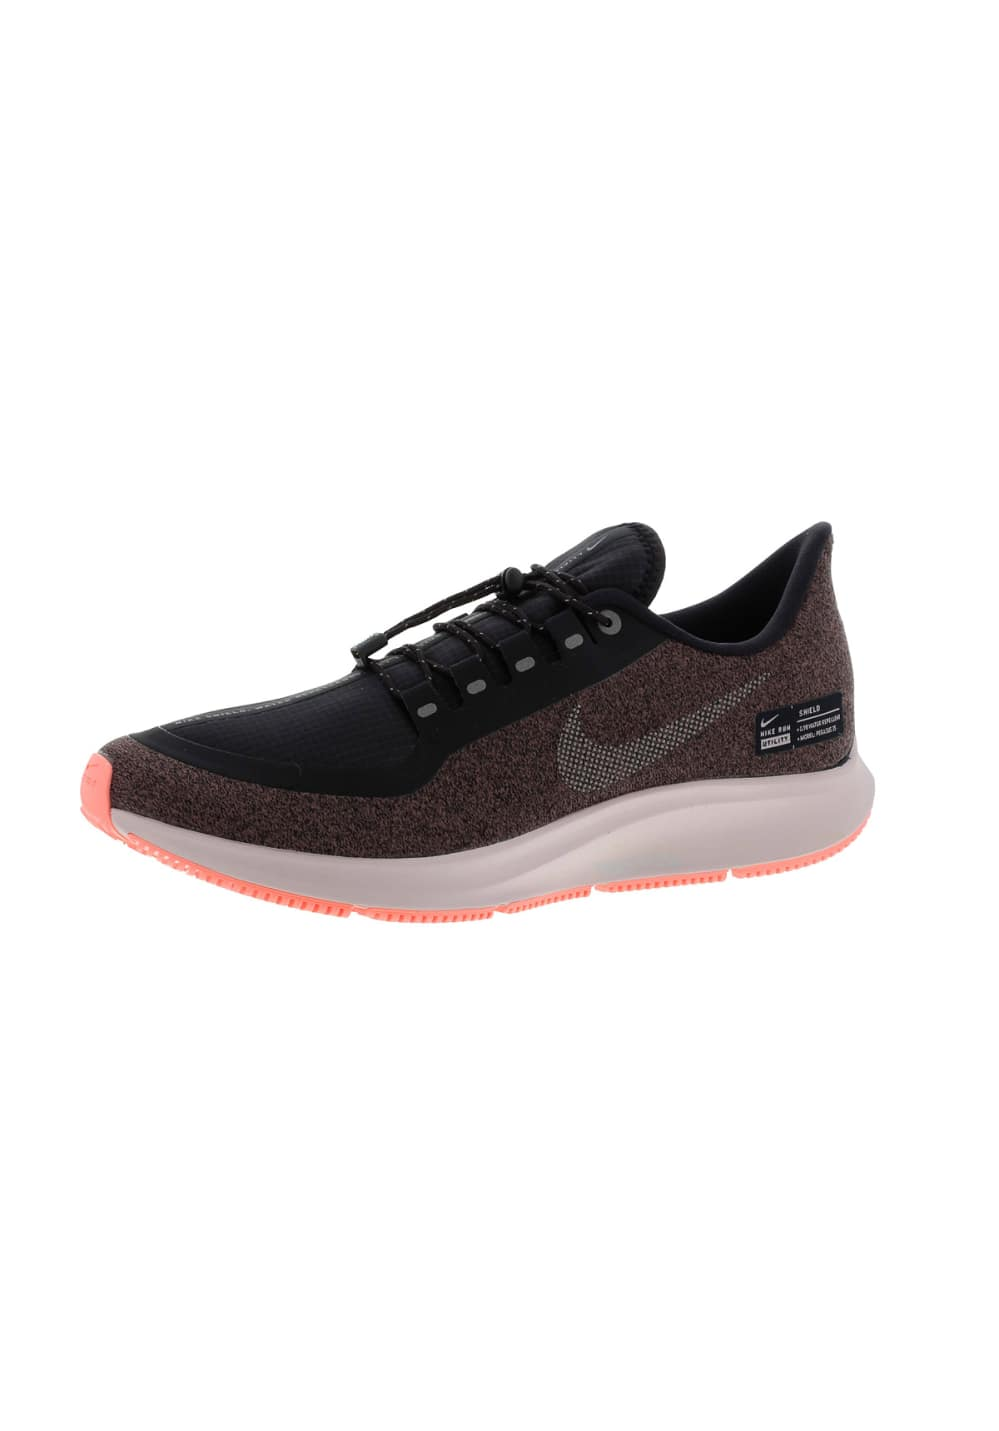 best website 5e9c0 ca62b Nike Air Zoom Pegasus 35 Rn Shield - Running shoes for Women - Black